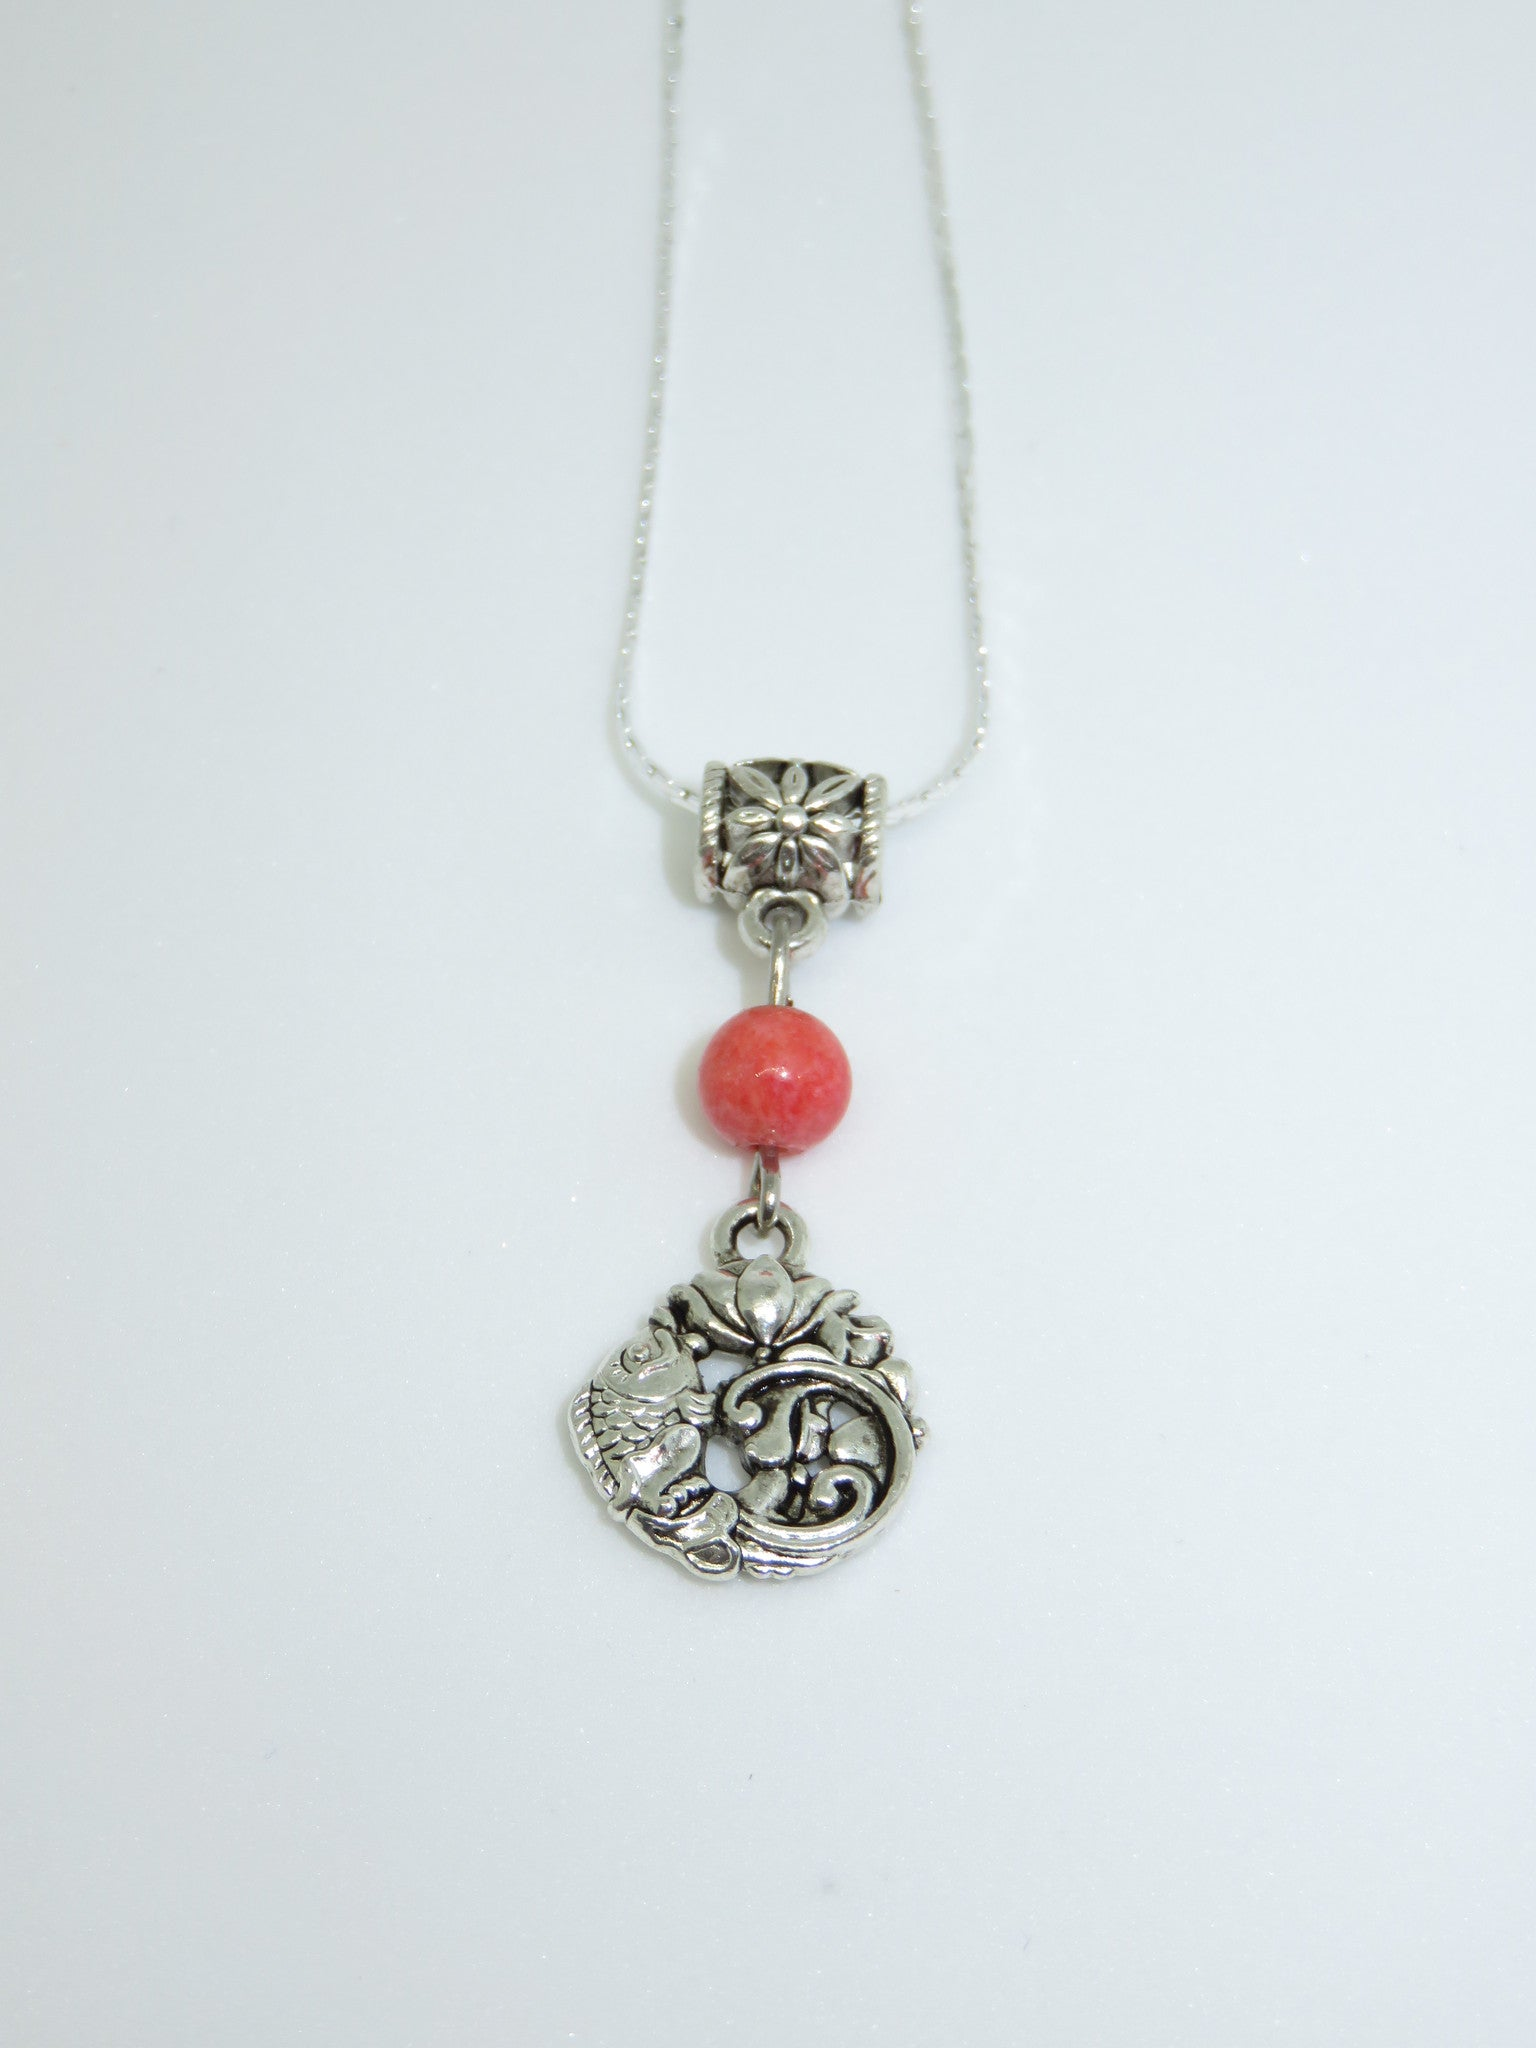 Silver fish bead pendant necklace - Asharlah.com